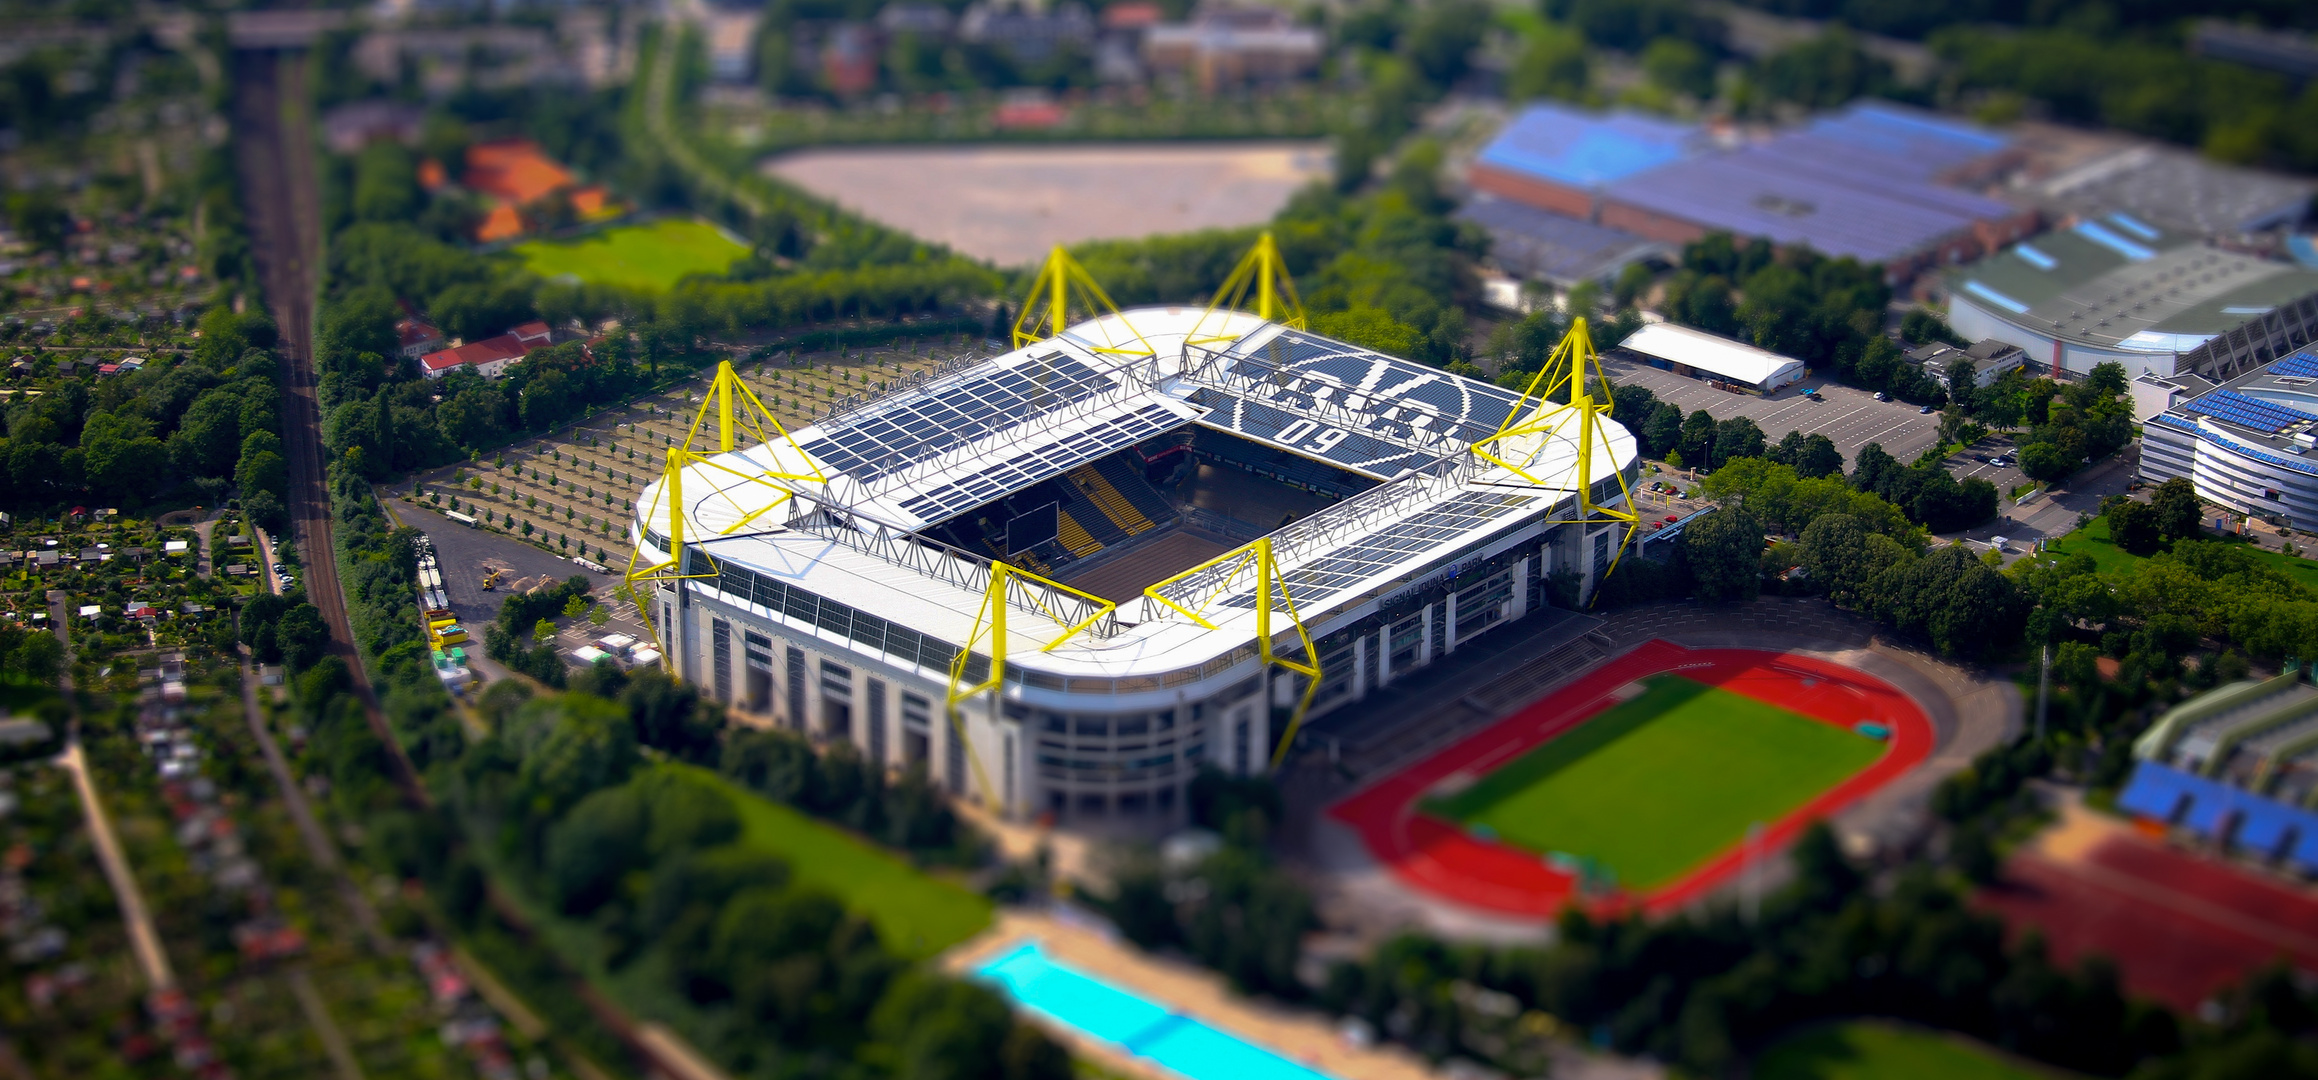 bvb stadion foto bild architektur stadtlandschaft fotohome bilder auf fotocommunity. Black Bedroom Furniture Sets. Home Design Ideas